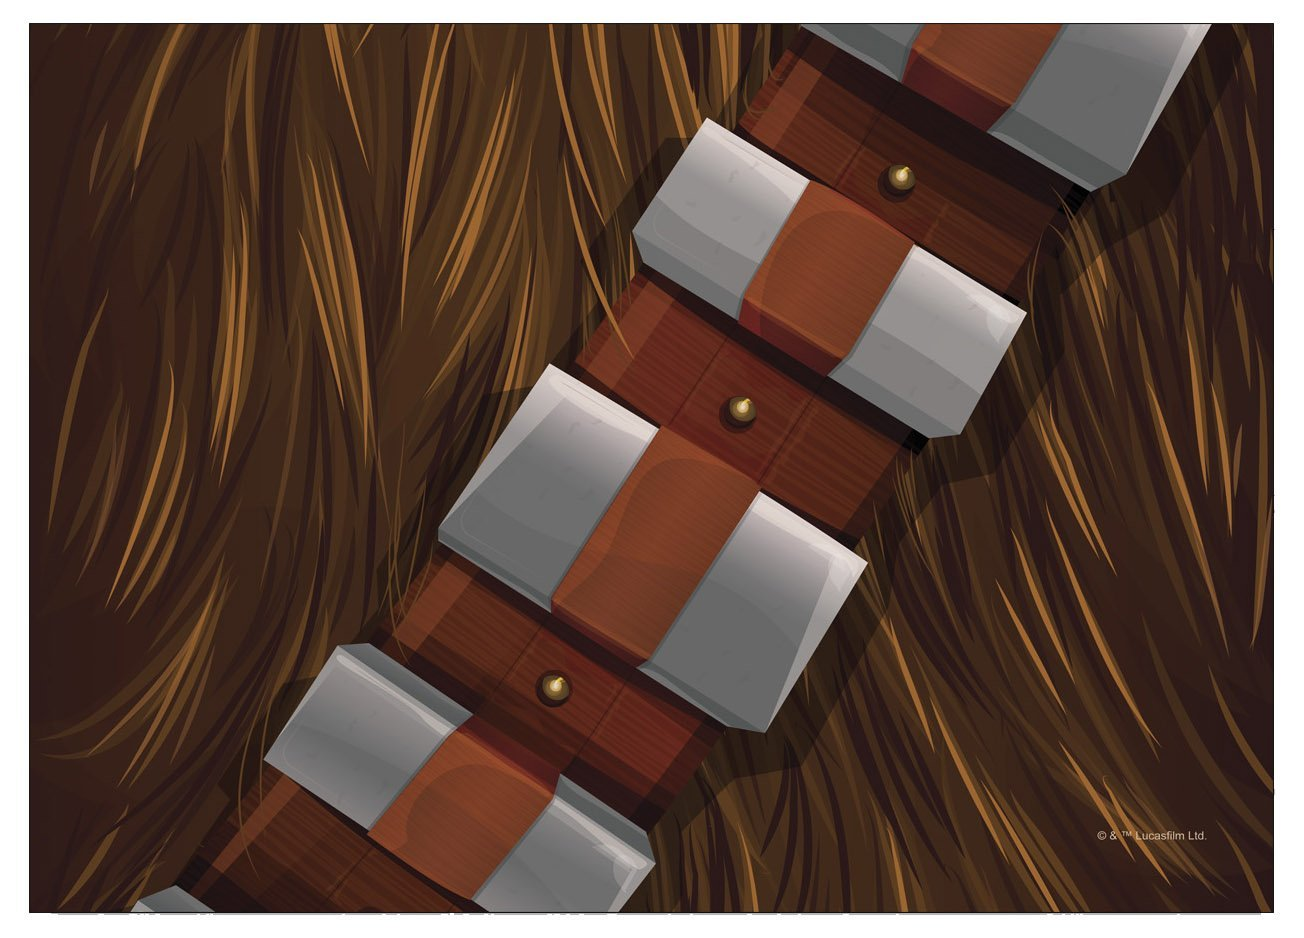 TLJ Chewbacca with Bandolier Laptop Wrap 2